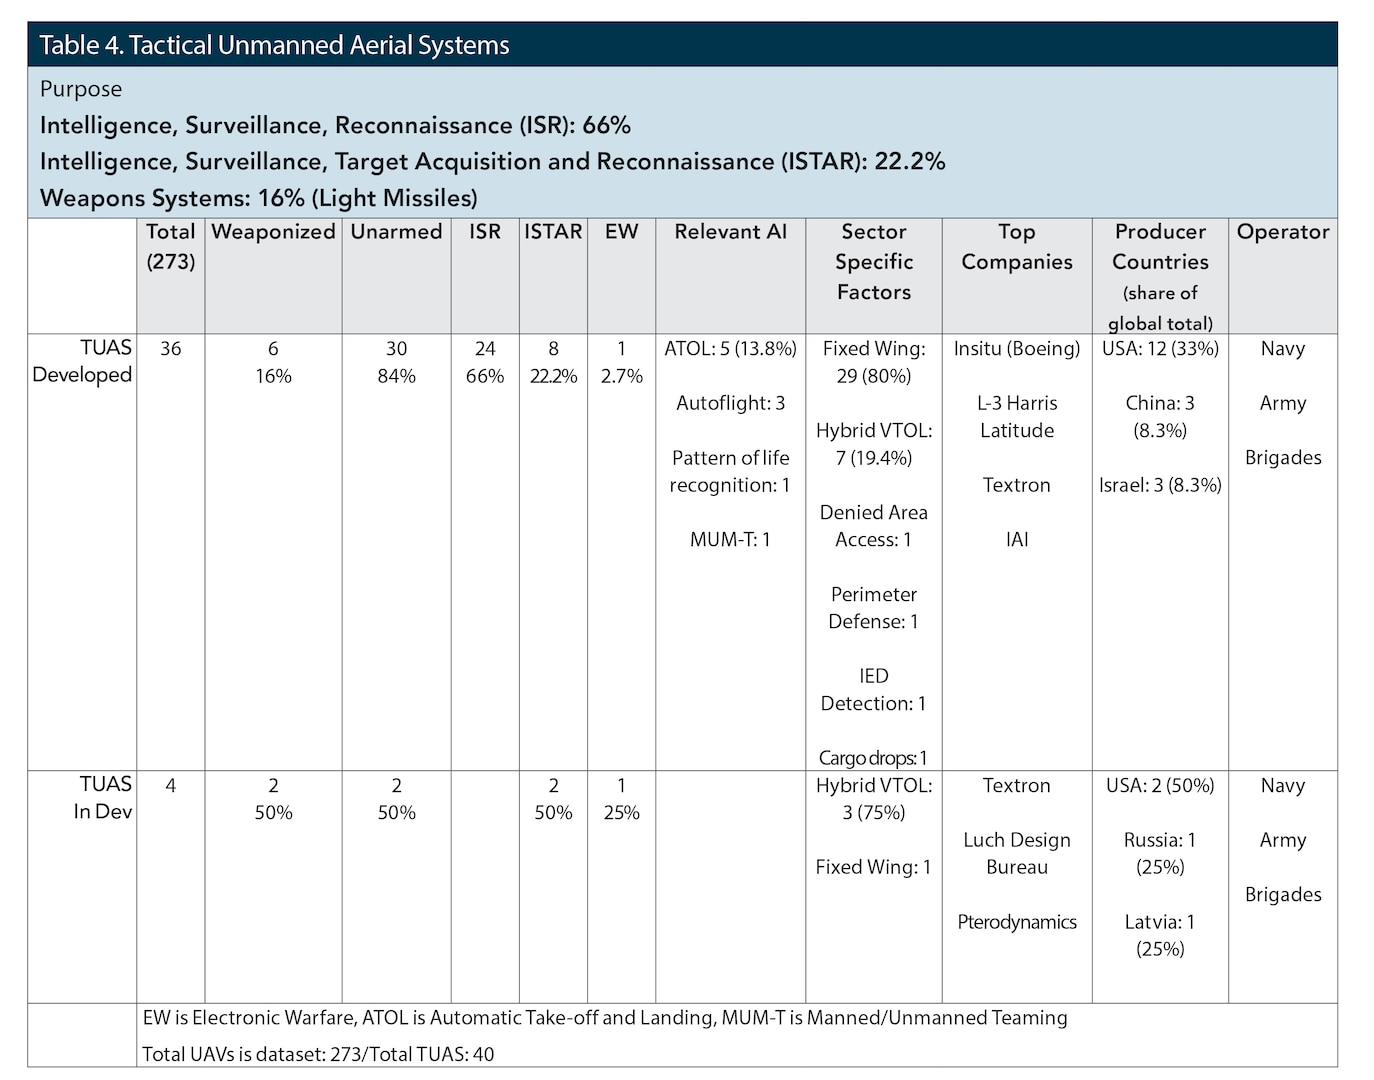 Table 4. Tactical Unmanned Aerial Systems